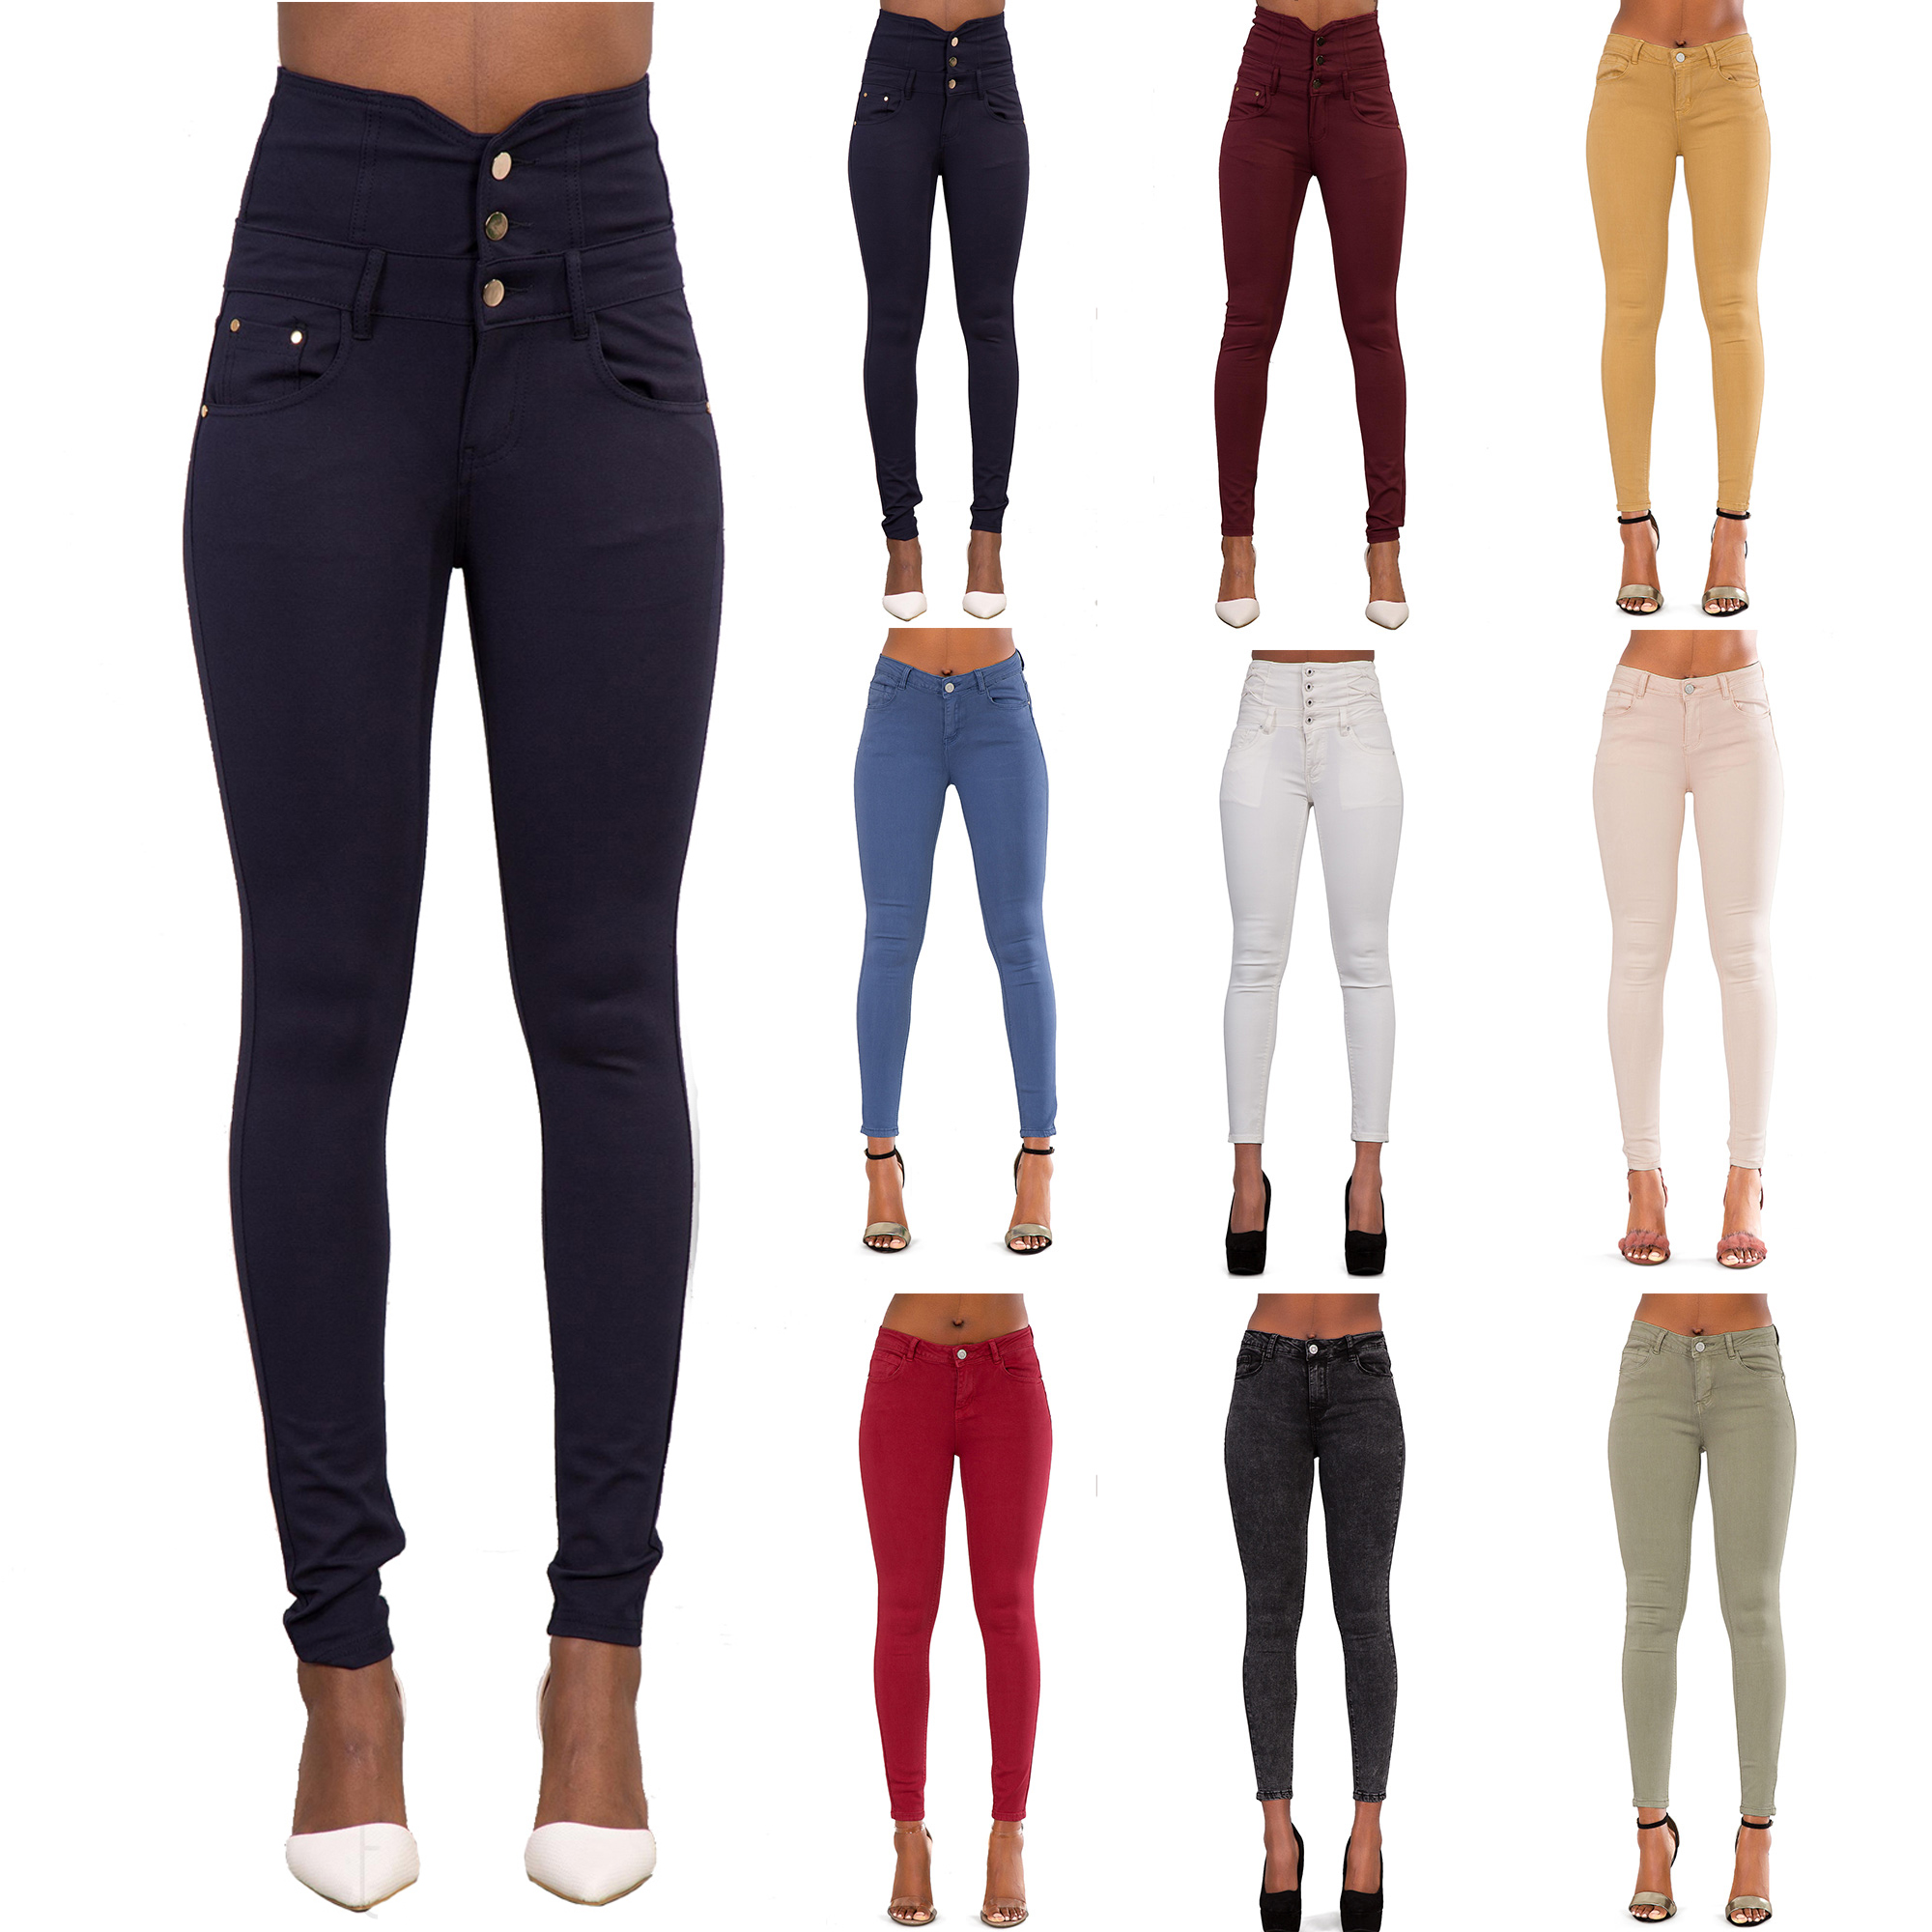 Women's High-waisted Suede Skinny Trousers £ 2, From Moda Operandi Price last checked 4 hours ago Product prices and availability are accurate as of .